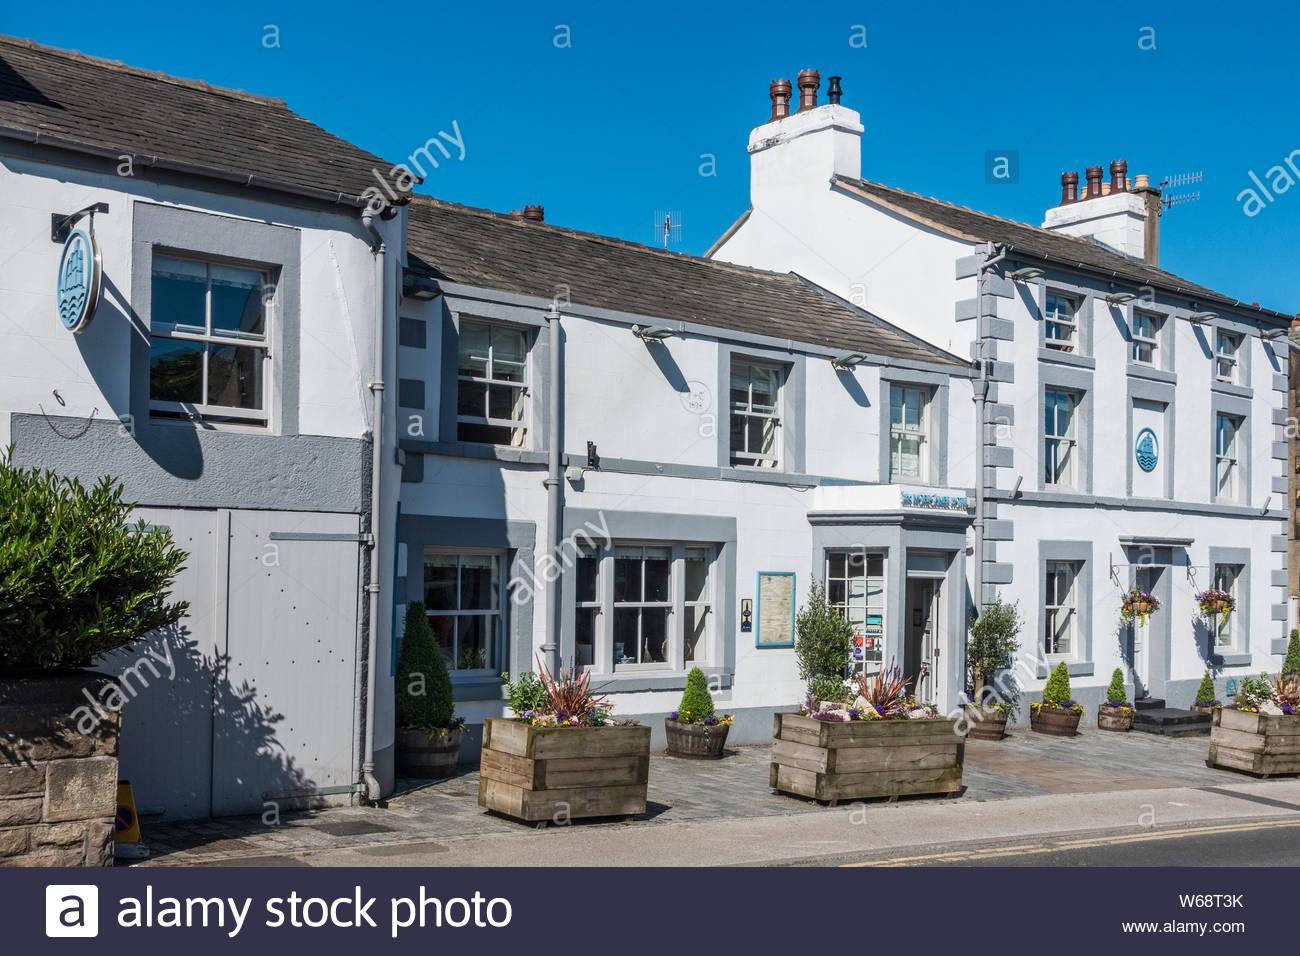 The Morecambe Hotel in Lord Street, Morecambe, Lancashire, England, UK Stock Photo